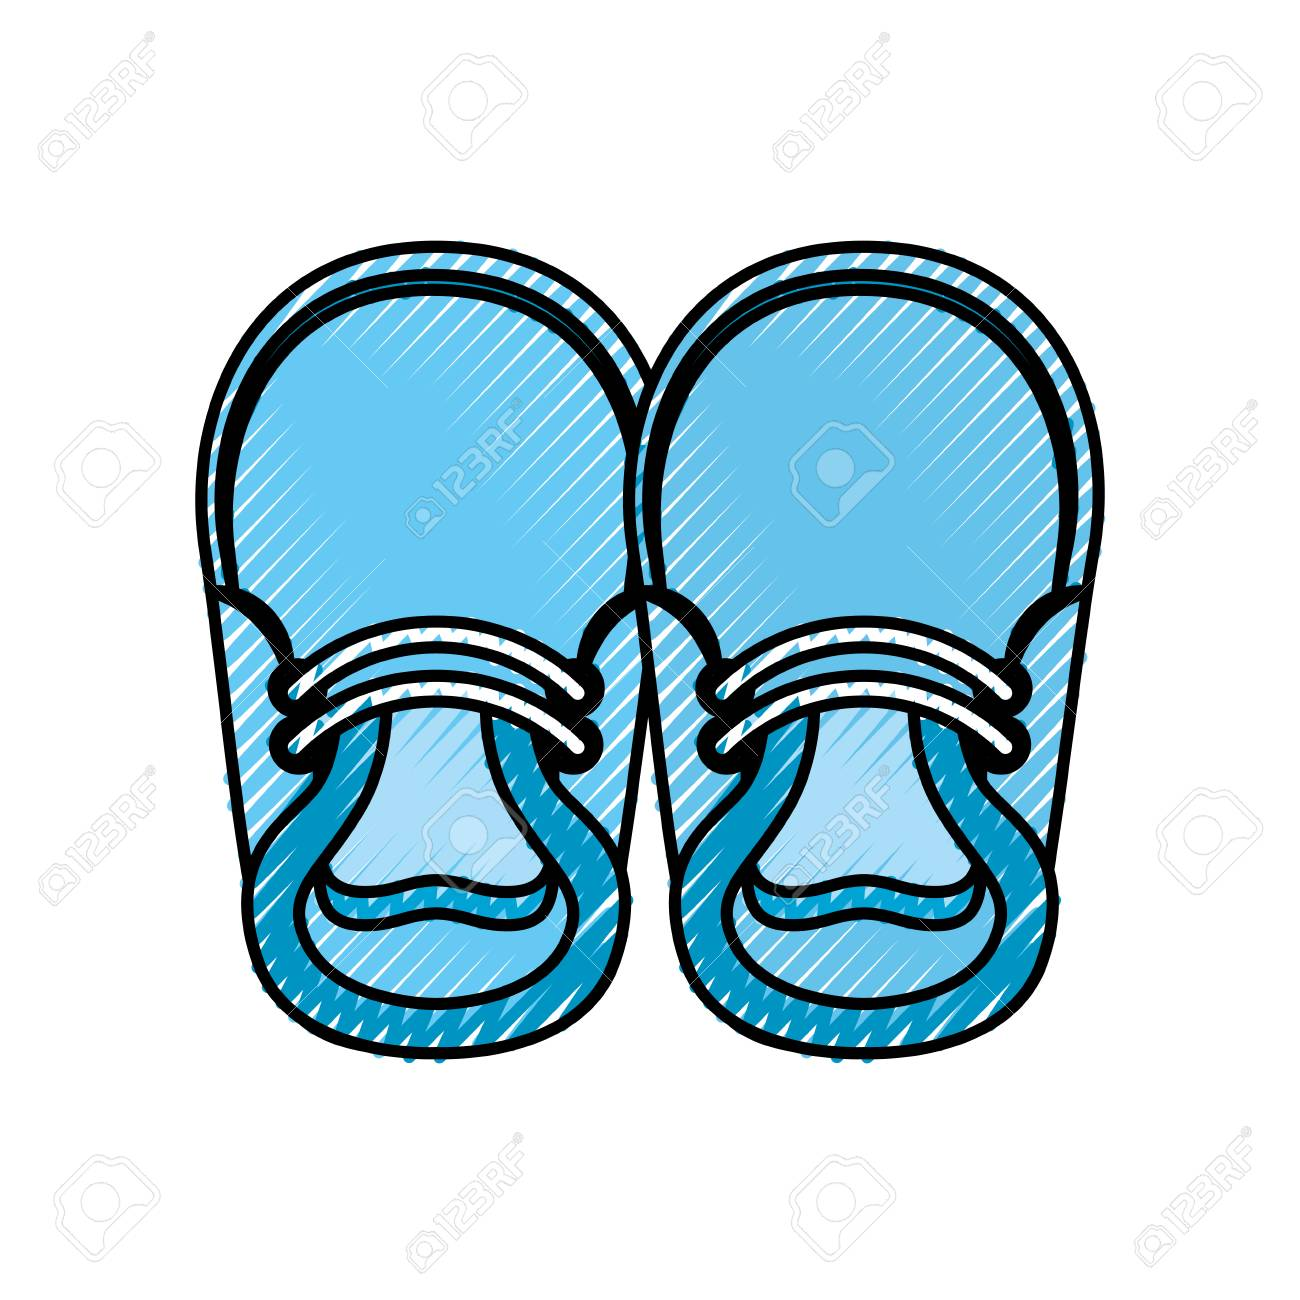 baby booties for boy child cute image vector illustration royalty rh 123rf com baby shoe clipart baby sandals clipart